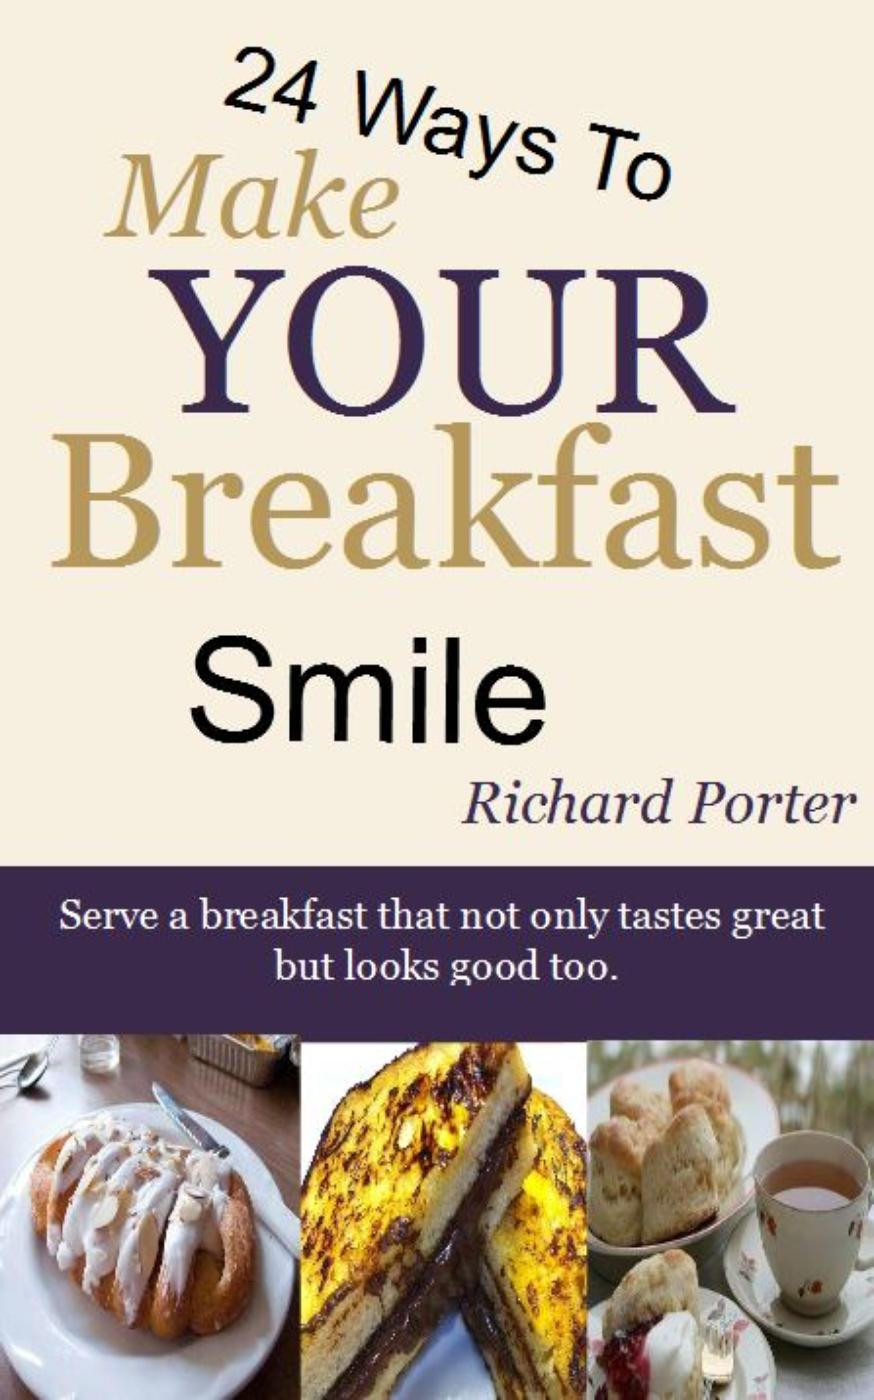 24 Ways to Make Your Breakfast Smile